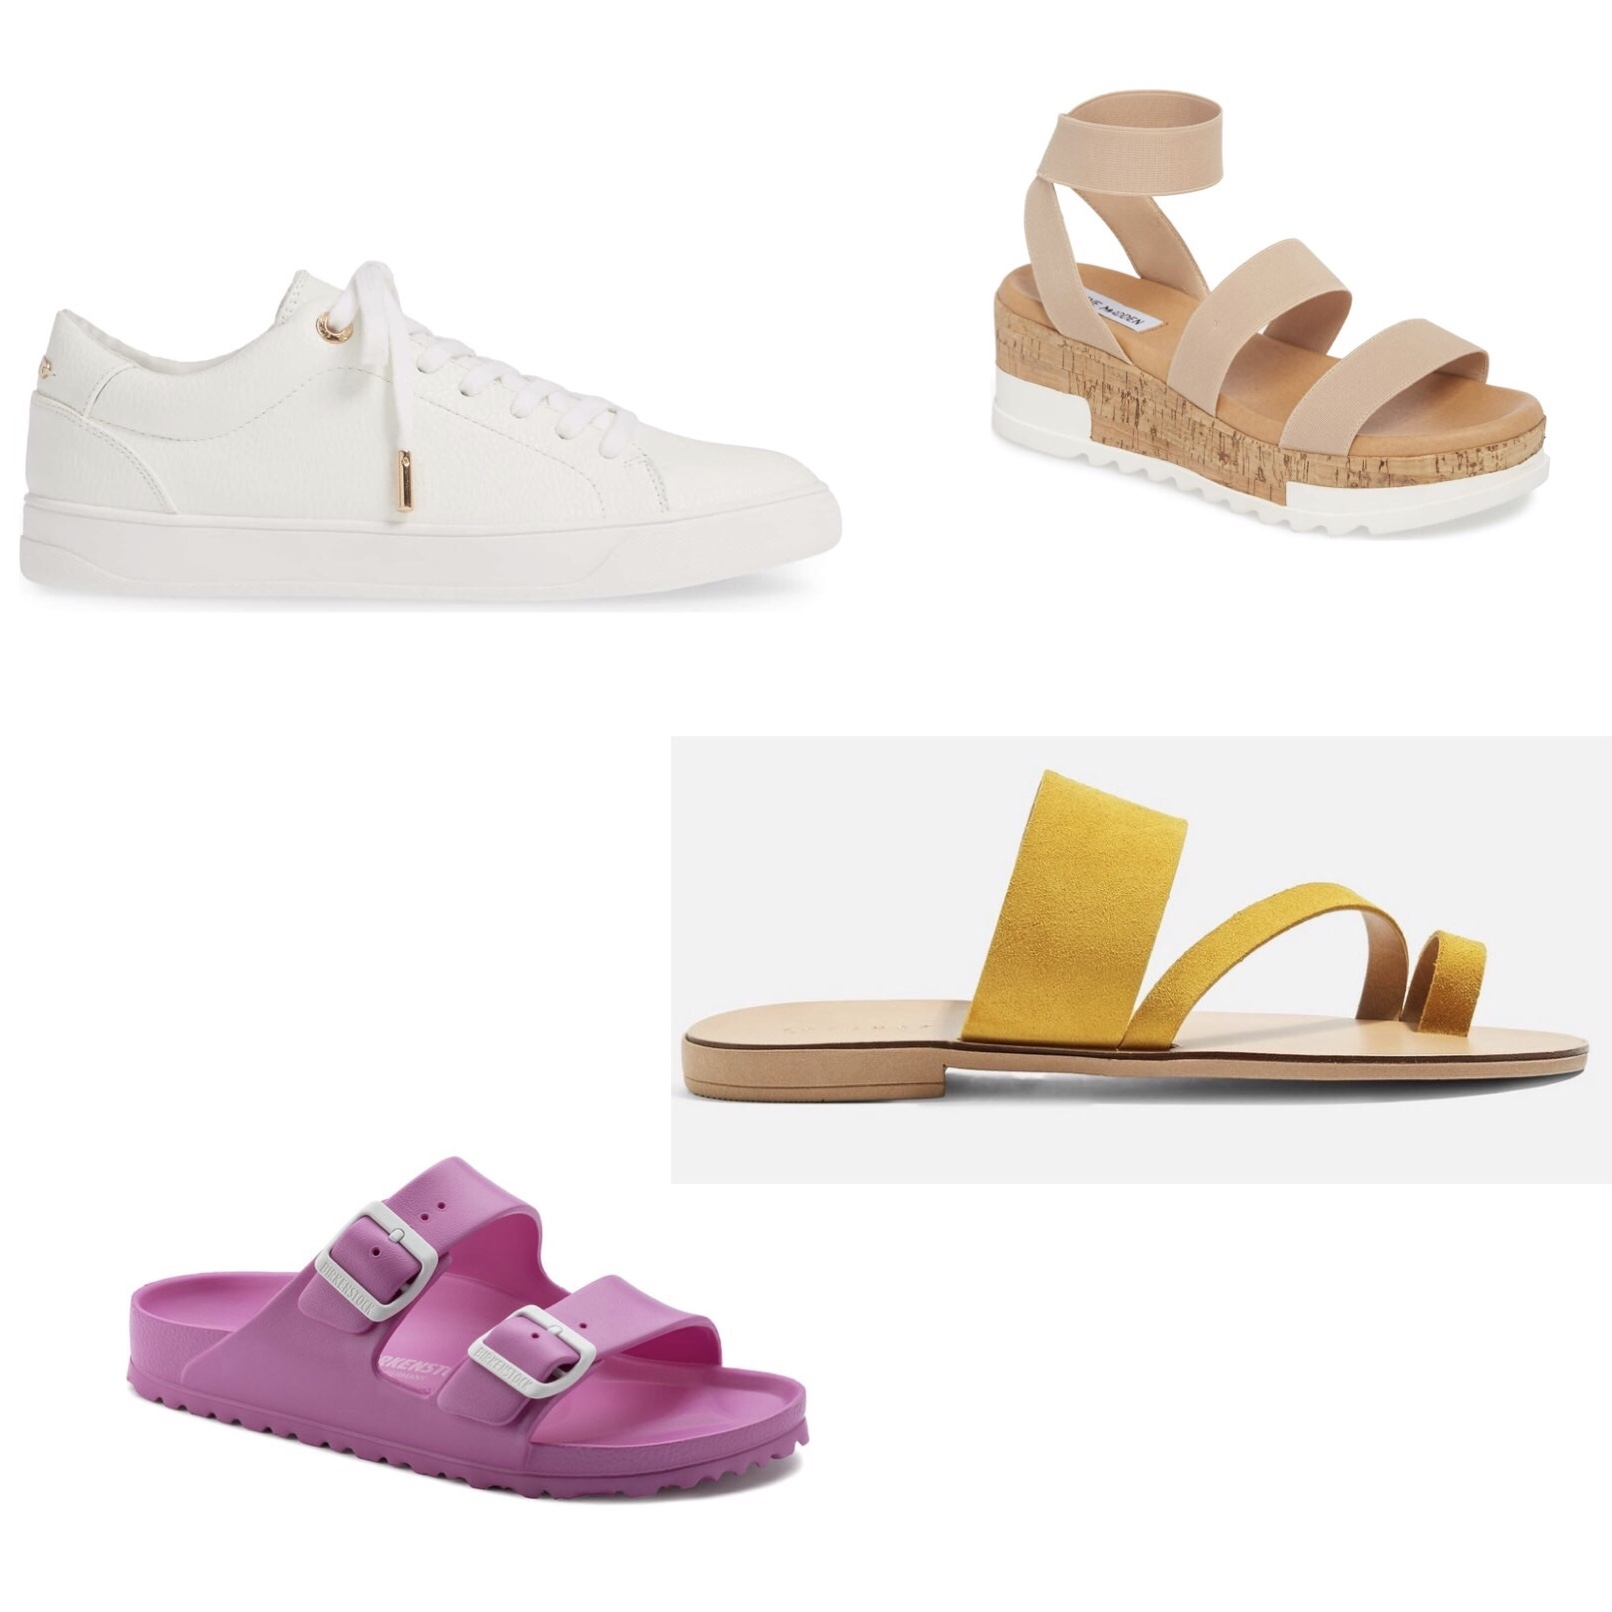 (Top to Bottom)  1.  Steve Madden Bandi Platform Wedge Sandal  - $80  2.  Topshop Curly Low Top Sneaker  - $40  3.  Topshop Hope Sandals  - $35  4.  Birkenstock Eva  - $40